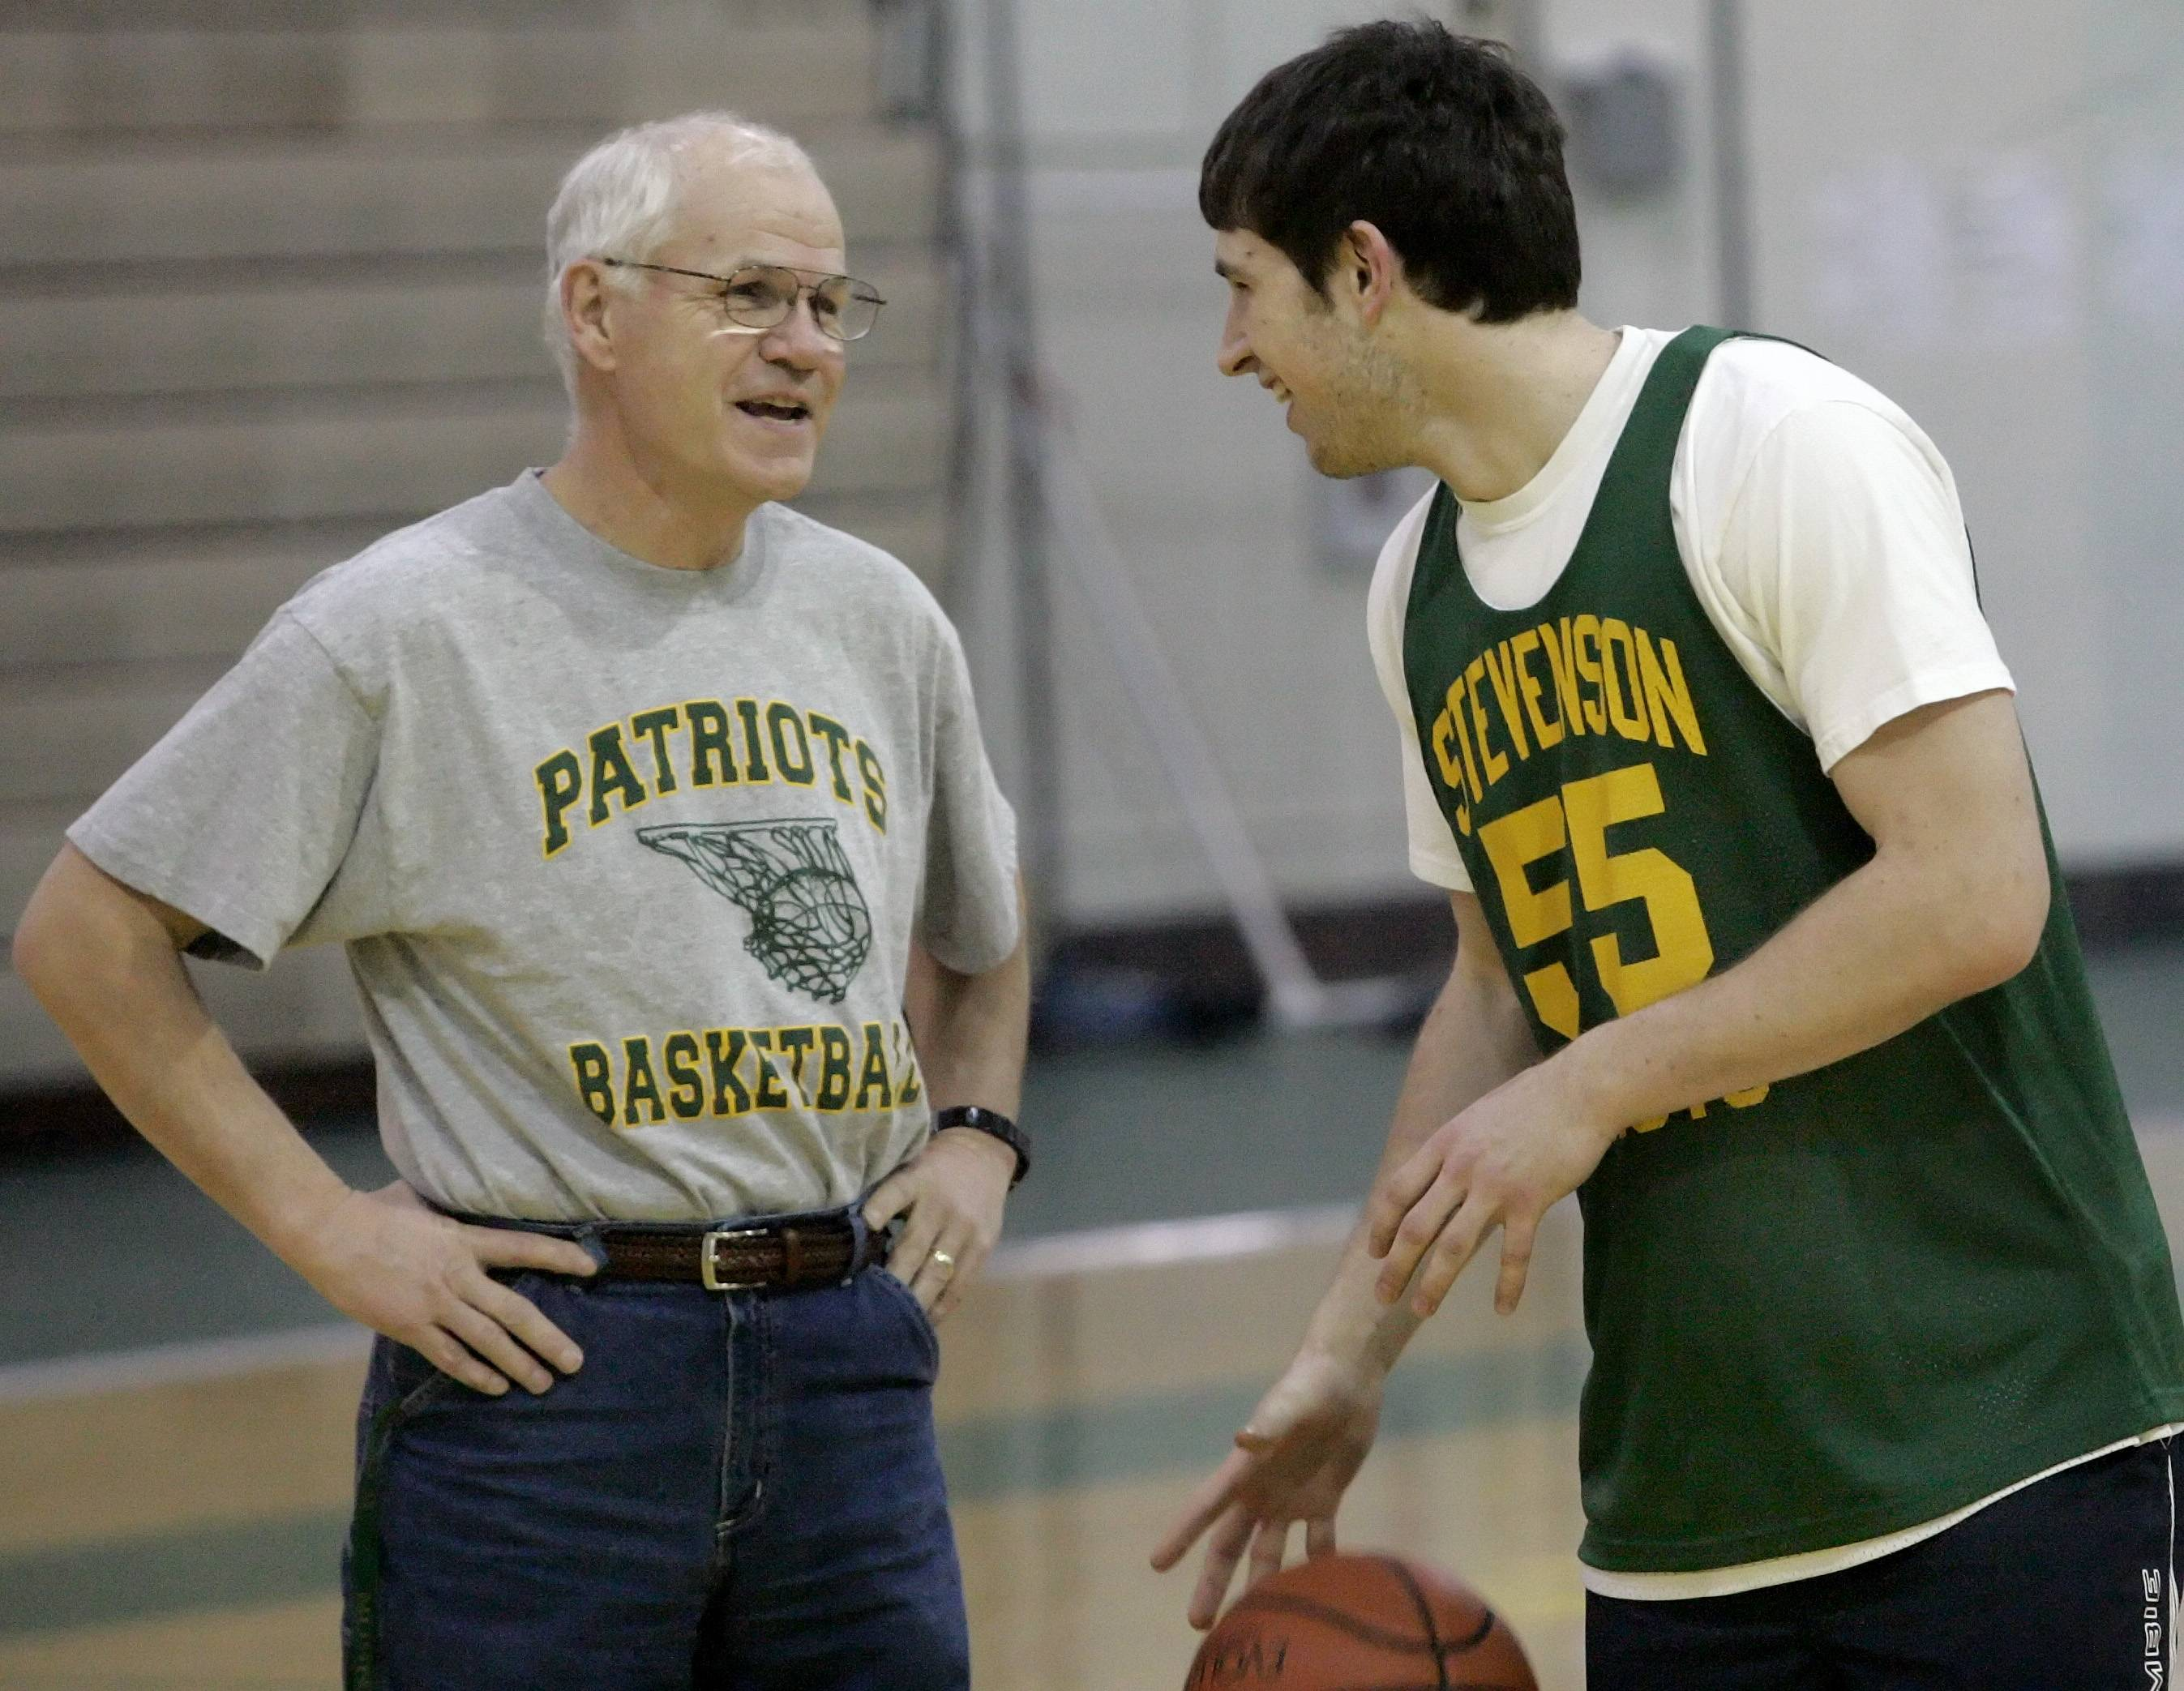 Stevenson boys basketball assistant coach Paul Swan, left, will be honored on Dec. 15 for his 50 years of service to the school.